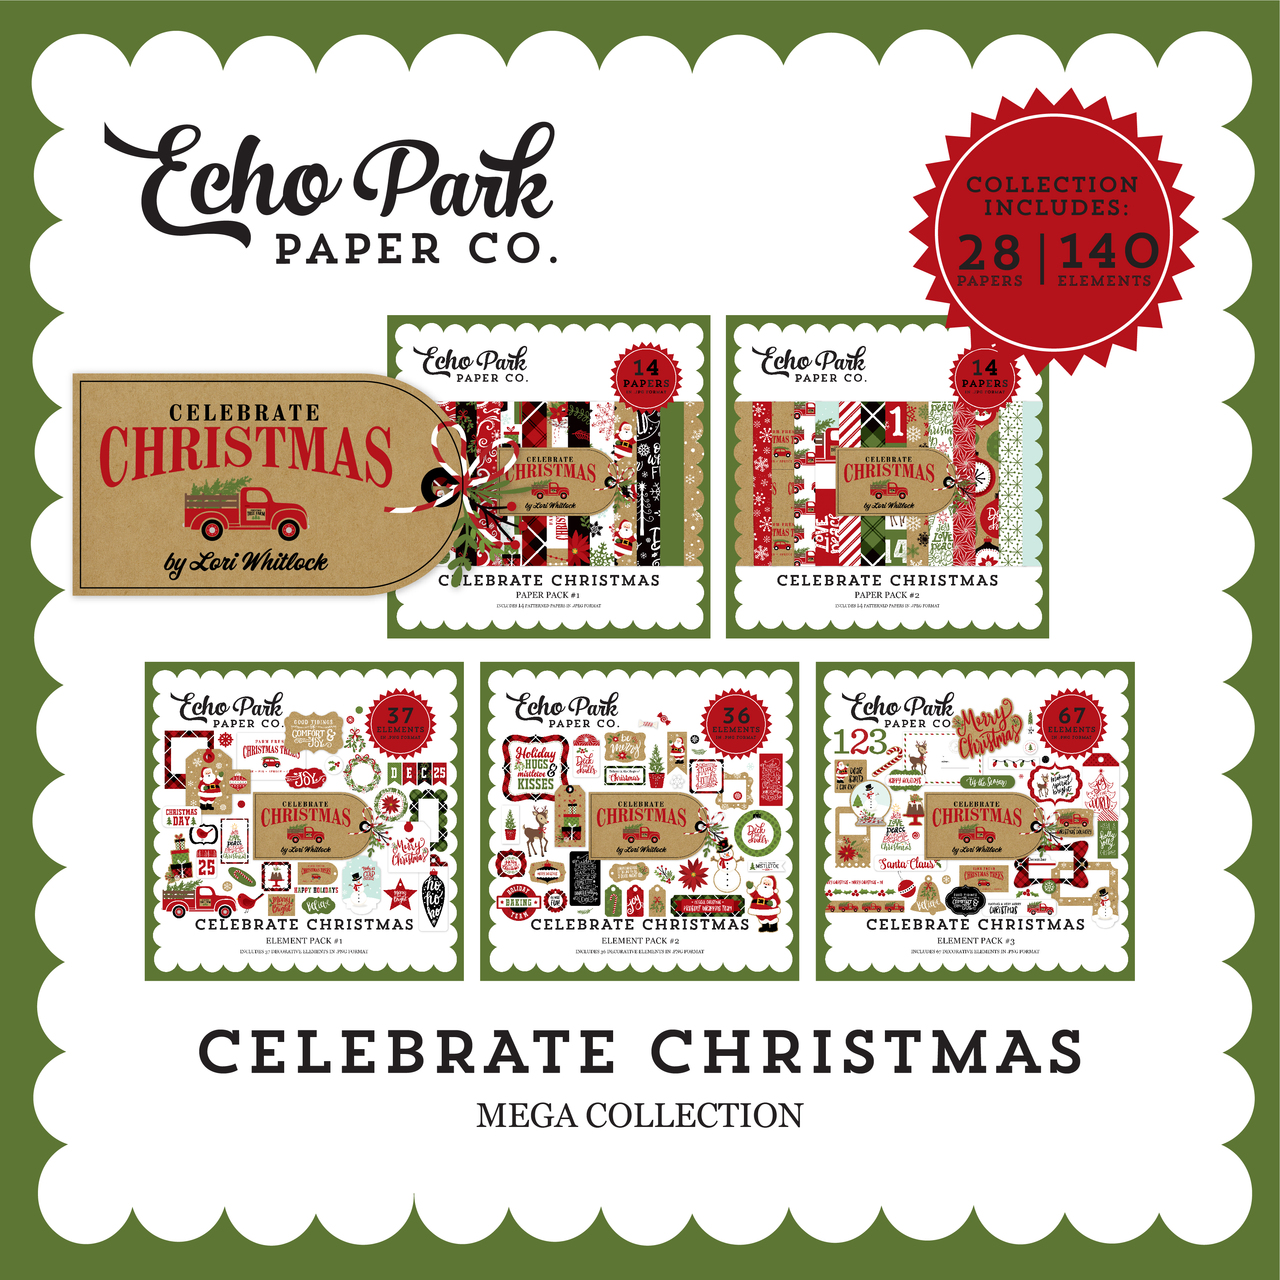 Celebrate Christmas Mega Collection